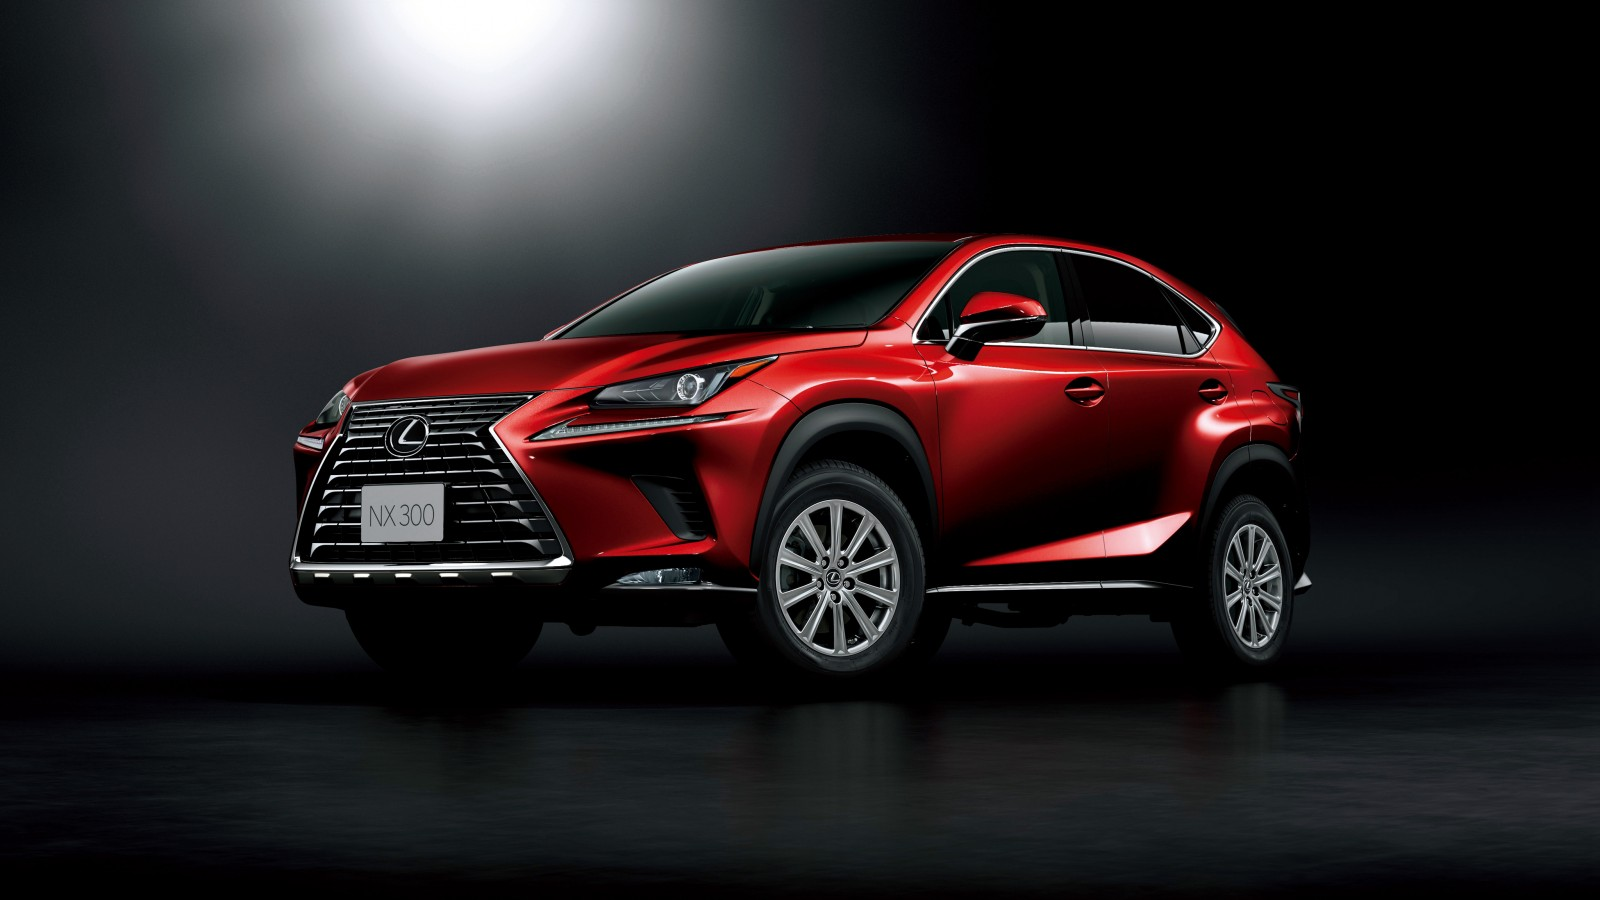 2018 lexus nx 300 4k wallpaper hd car wallpapers id 8675. Black Bedroom Furniture Sets. Home Design Ideas